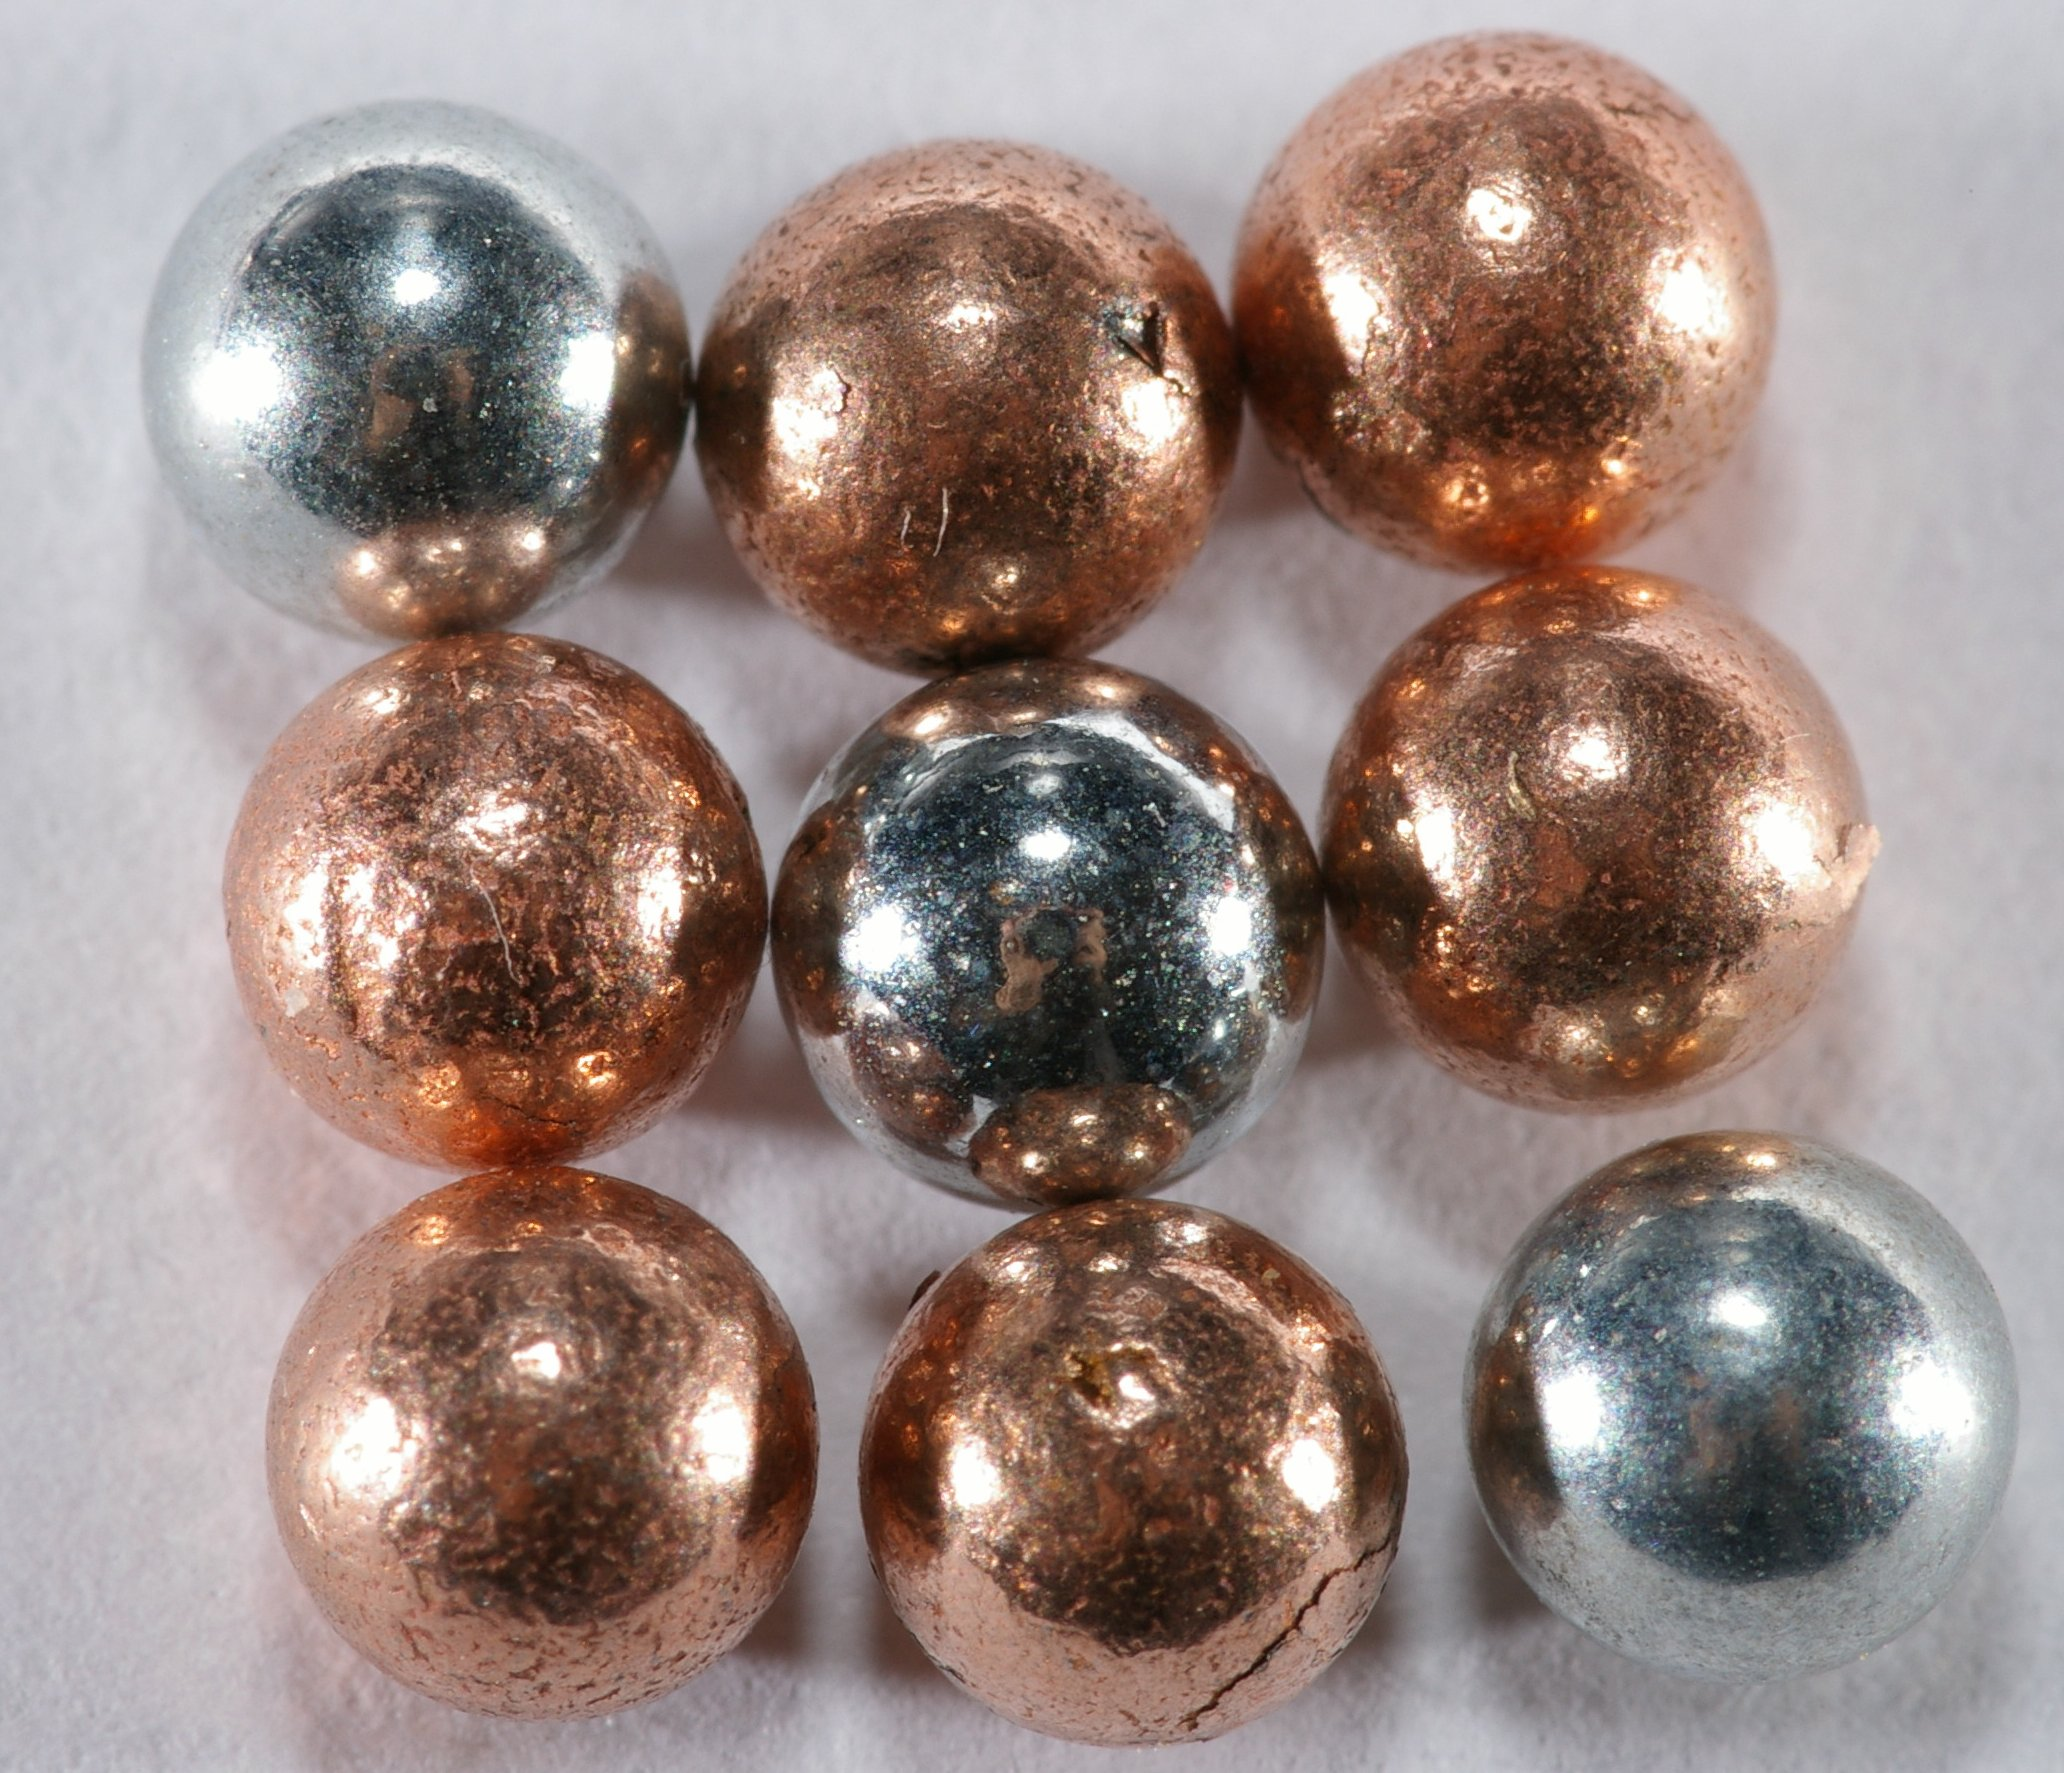 copper and nickel plated bb pellets